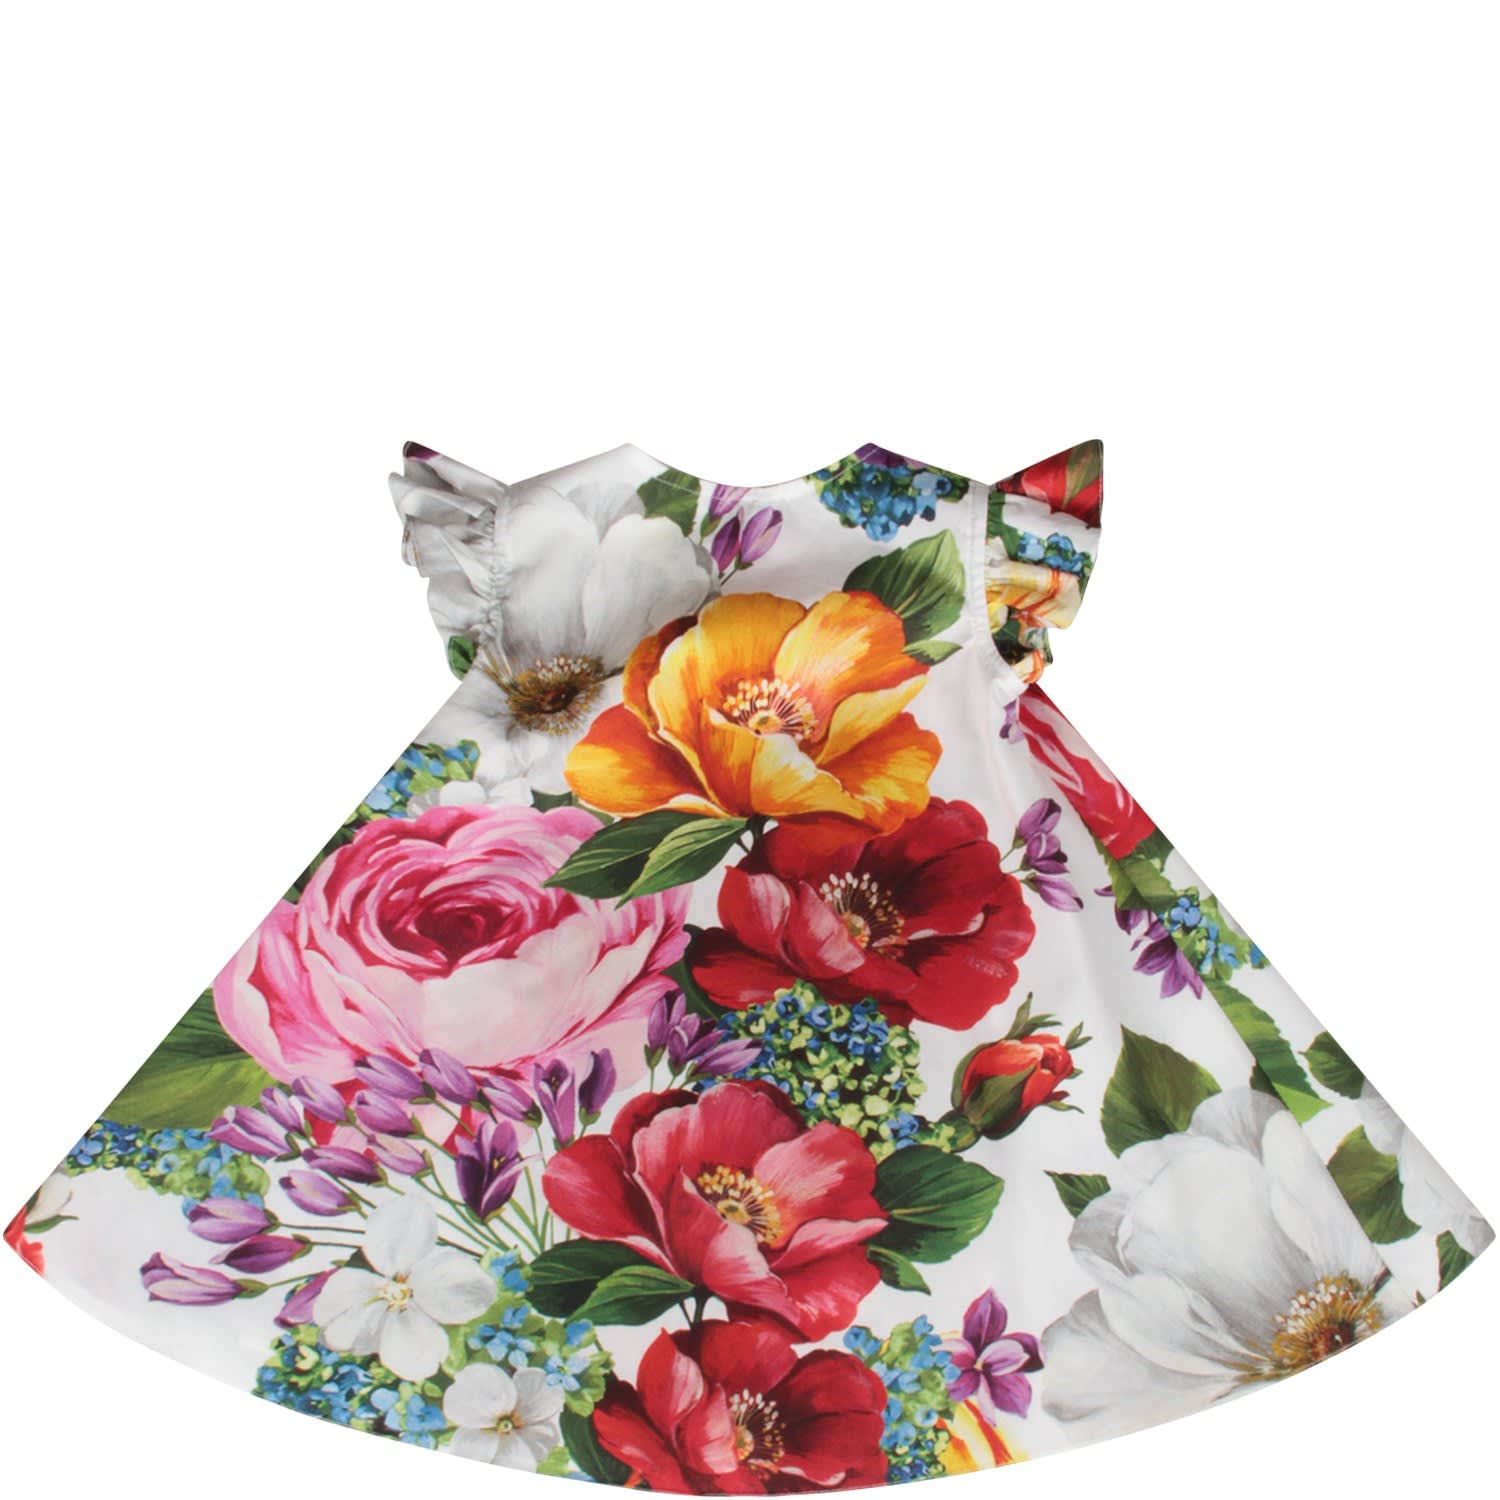 Buy Dolce & Gabbana White Babygirl Dress With Colorful Flowers online, shop Dolce & Gabbana with free shipping